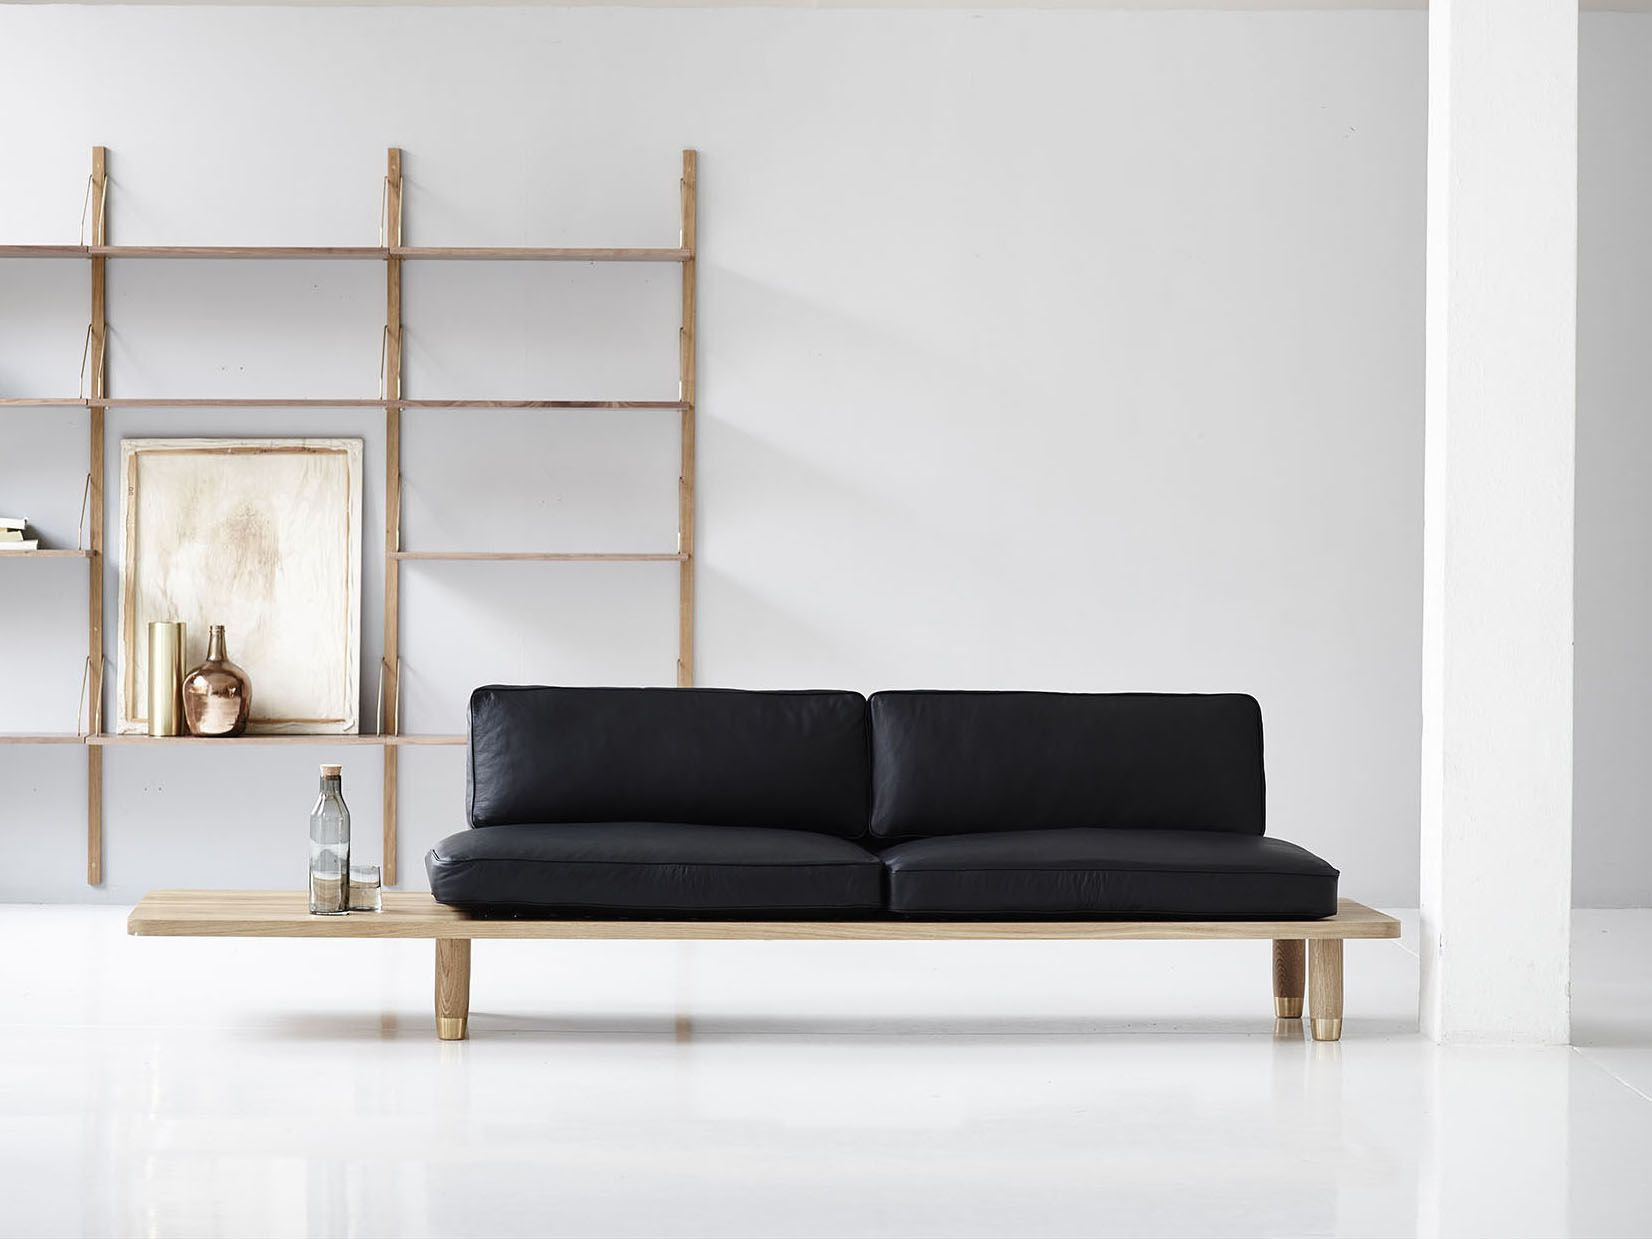 Minimal Sofa Design Leather Blue Pin By Nicholas Zhou On Home Pinterest Wooden And The Plank Is First Designed Young Danish Furniture Company In Creating This Distinctive Norwegian Designers Myhr Knudsen Berg